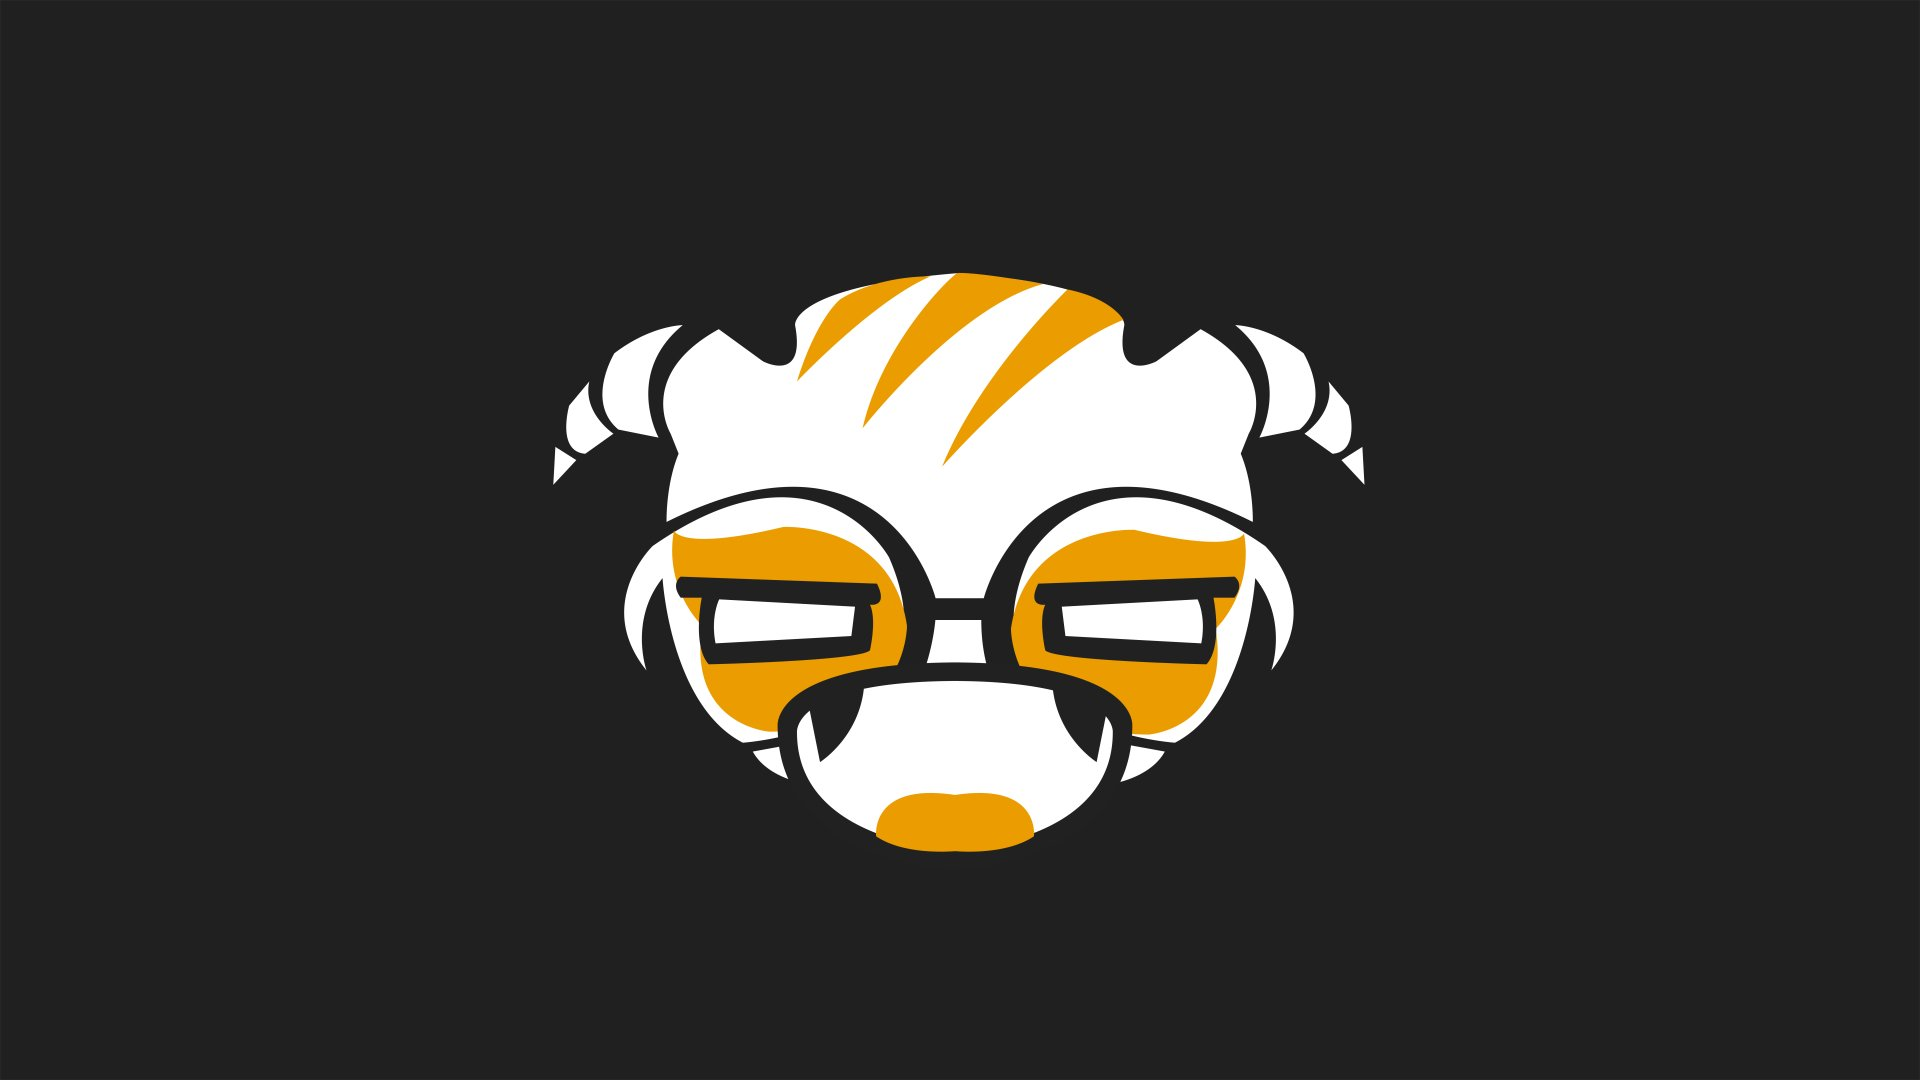 Datorspel - Tom Clancy's Rainbow Six: Siege  Minimalist Dokkaebi (Tom Clancy's Rainbow Six: Siege) Operation White Noise Bakgrund